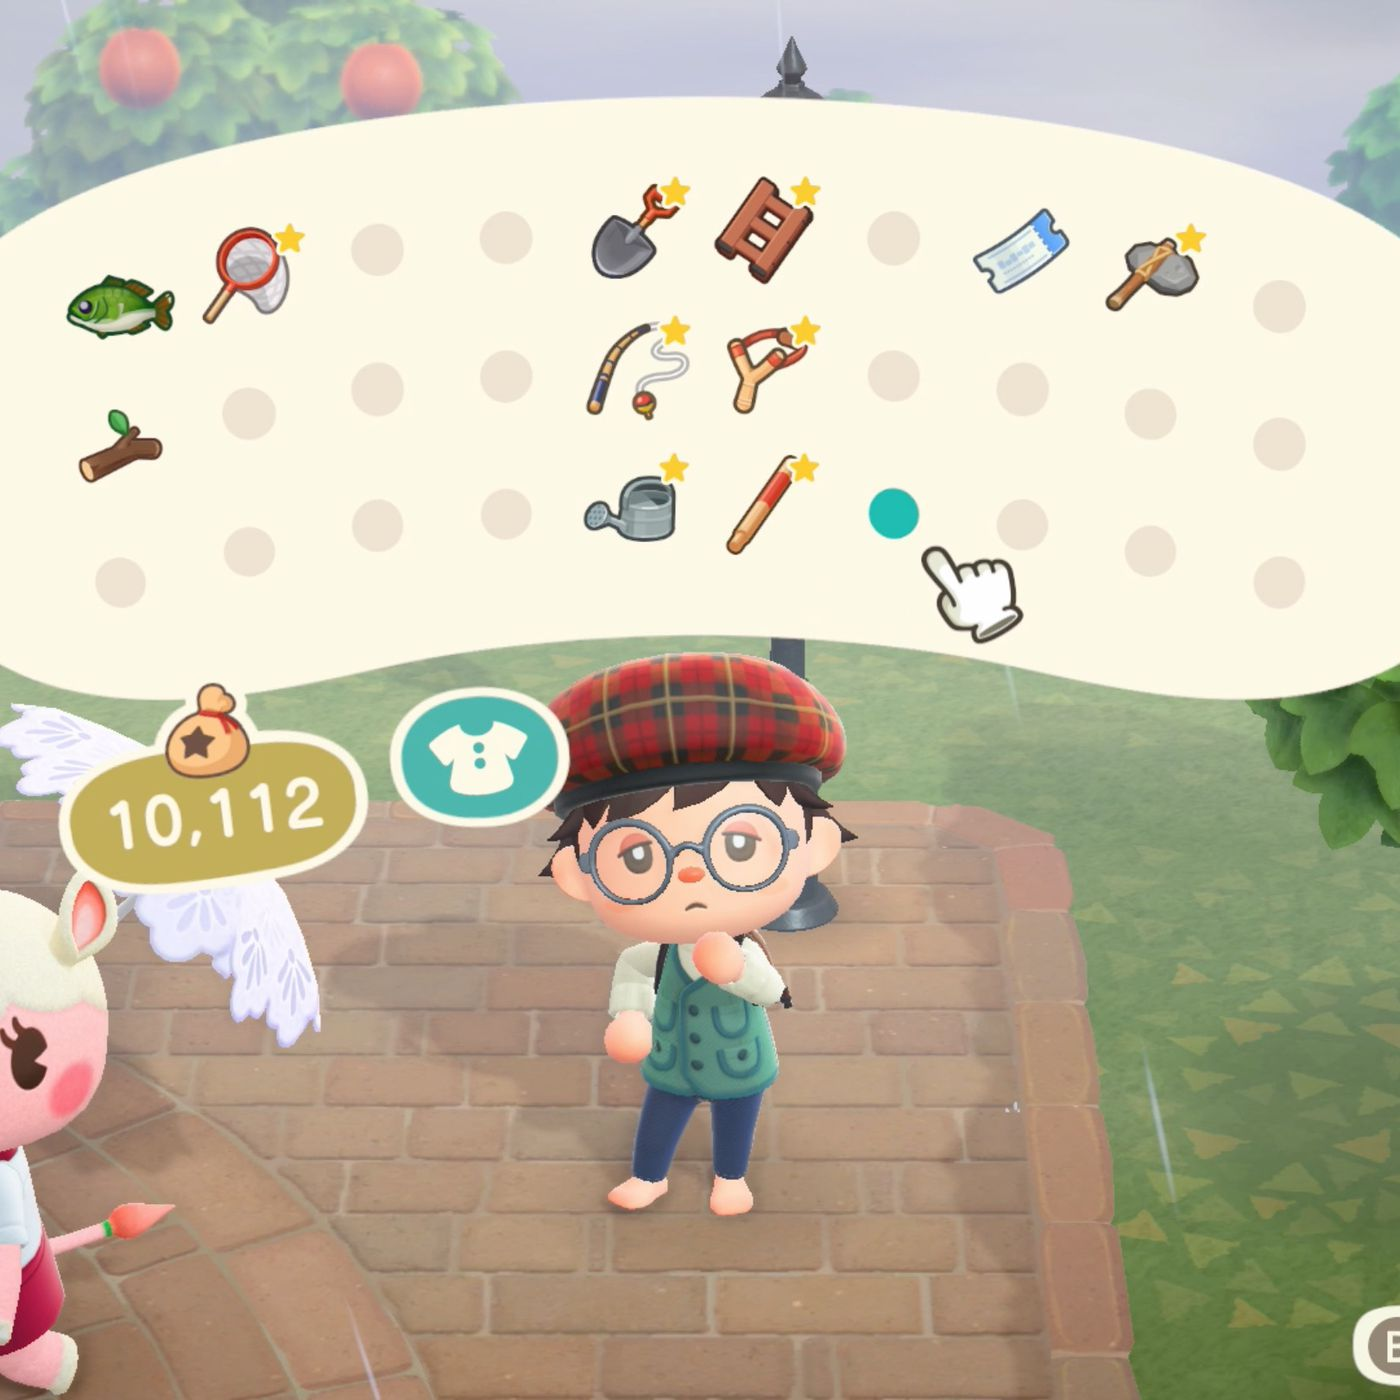 How To Move Inventory And Storage Items In Animal Crossing New